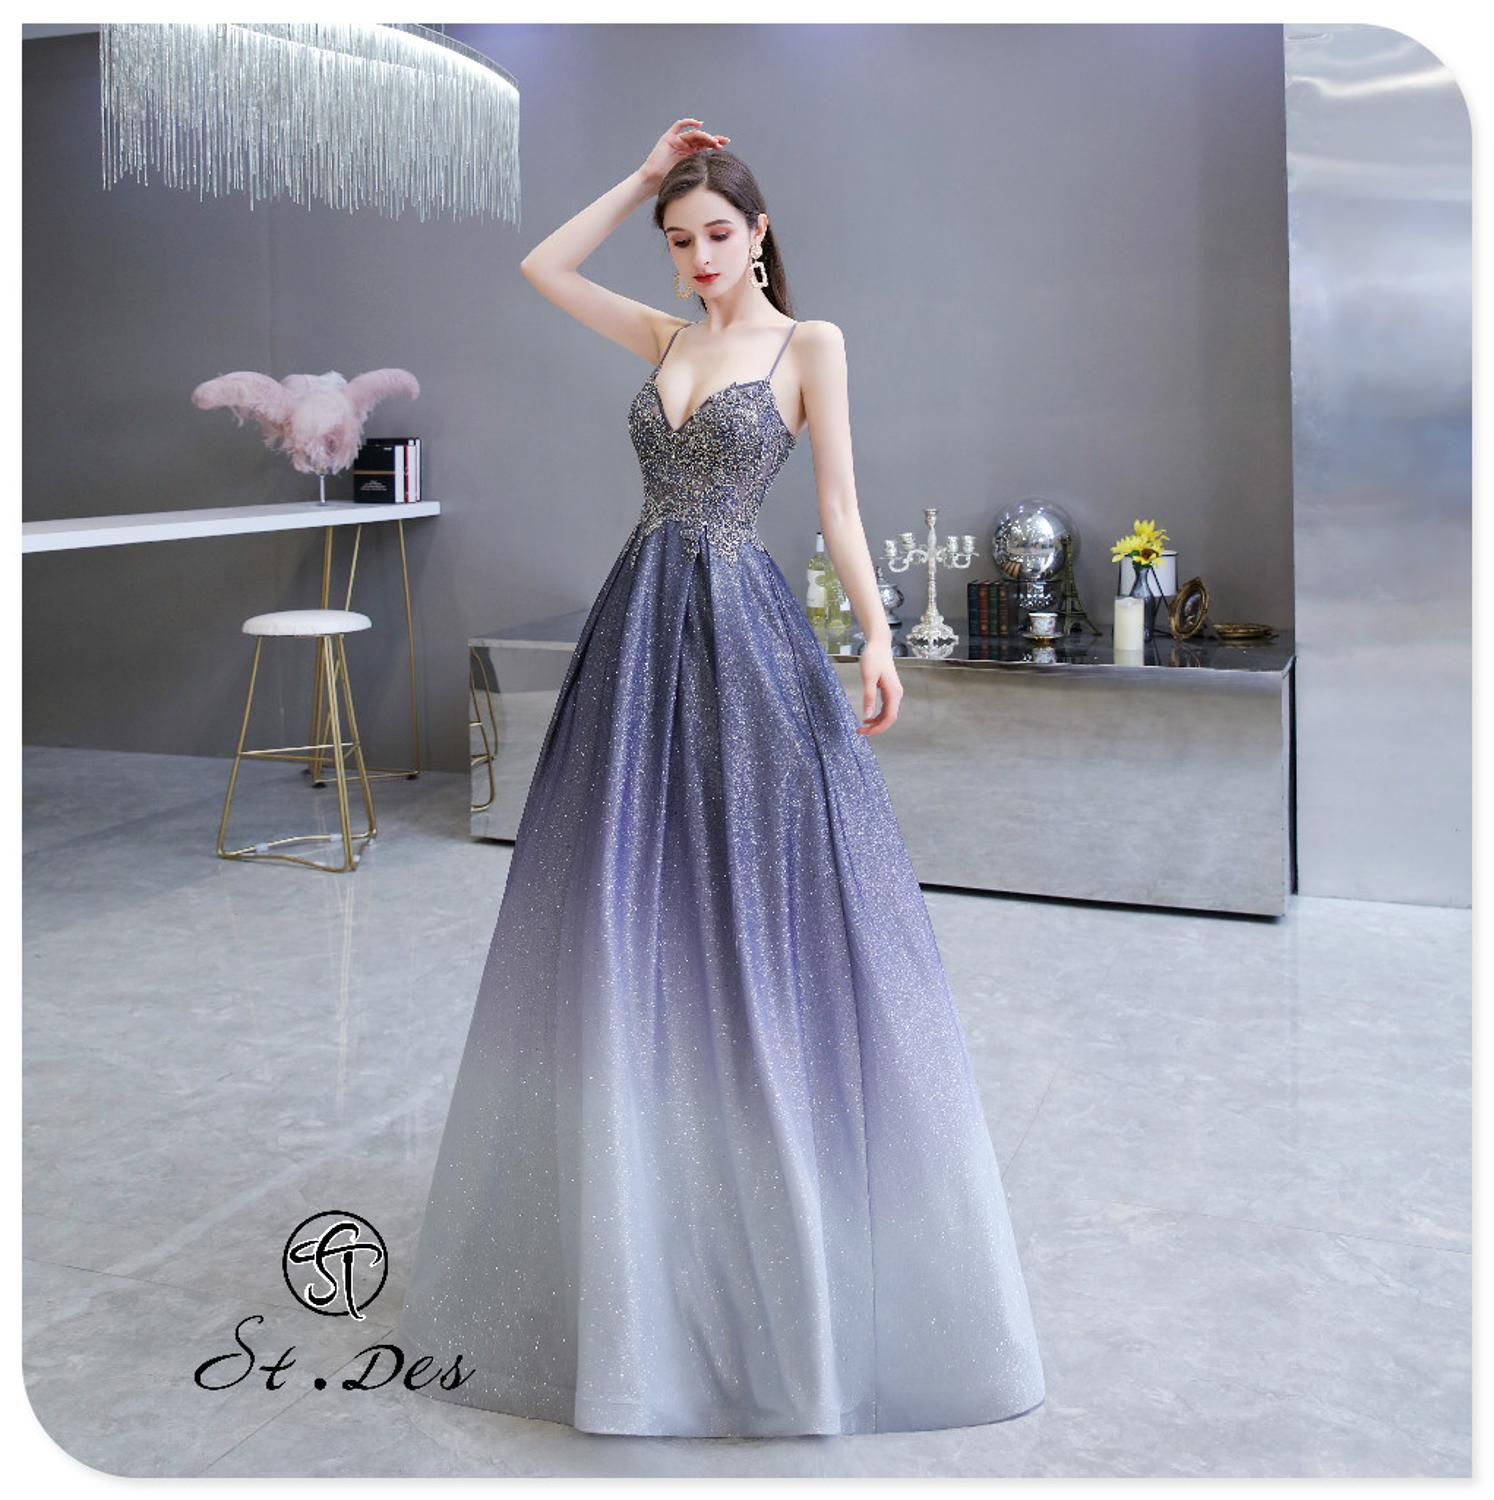 S.T.DES Evening Dress 2020 New Arrival Starry Night Beading A-line V-Neck Sleeveless Floor Length Party Dress Dinner Gowns